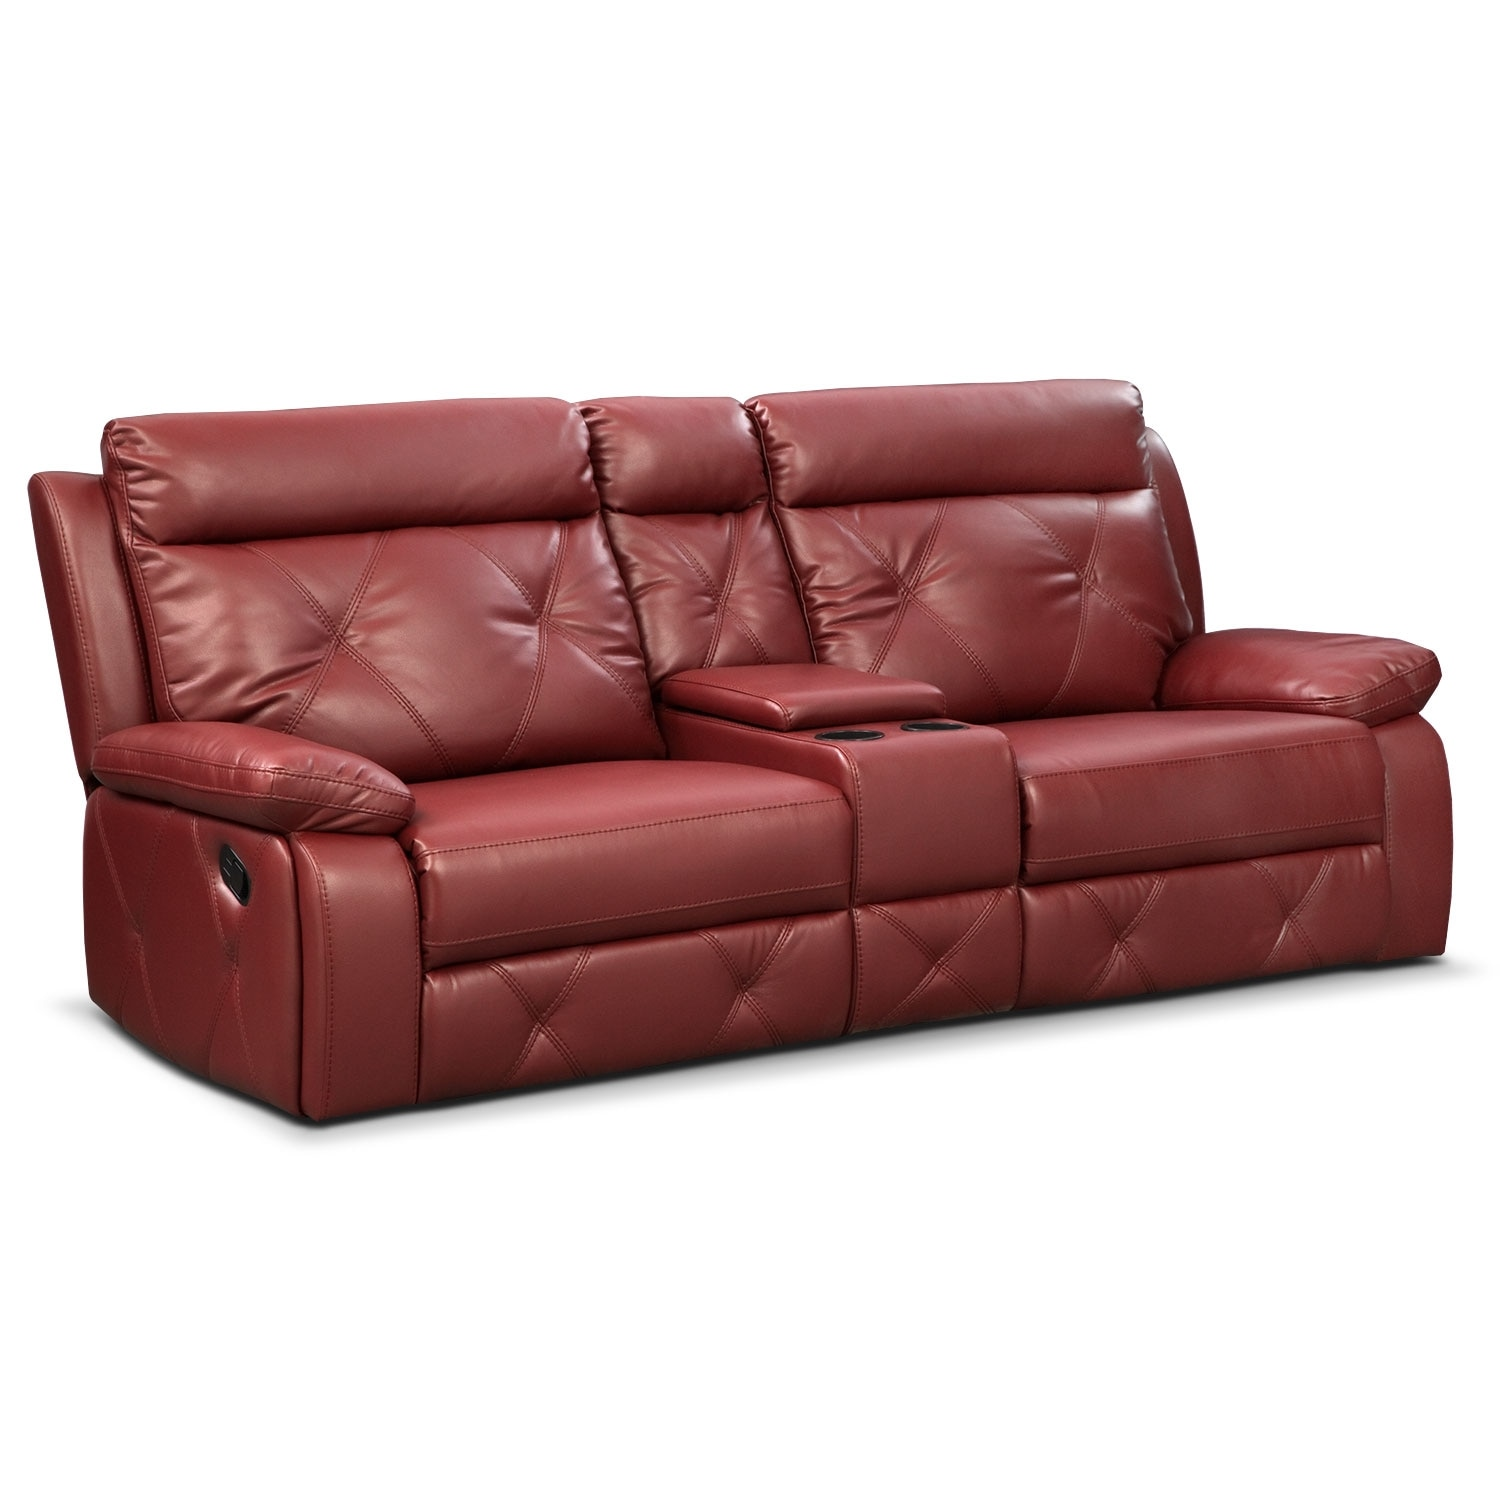 Bedford Red 3 Pc Reclining Sofa W Console